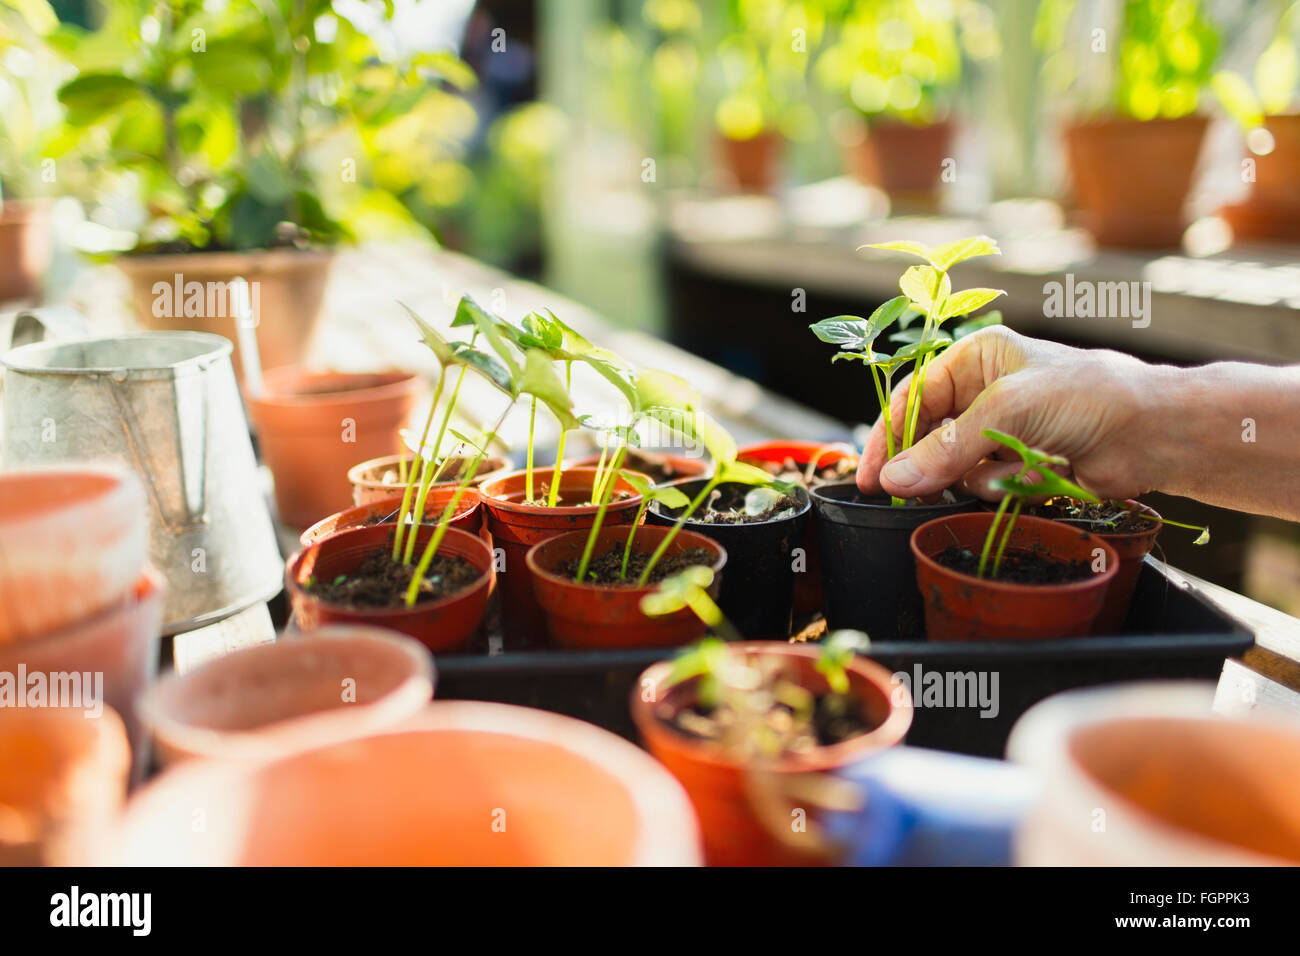 Woman potting plants in greenhouse - Stock Image